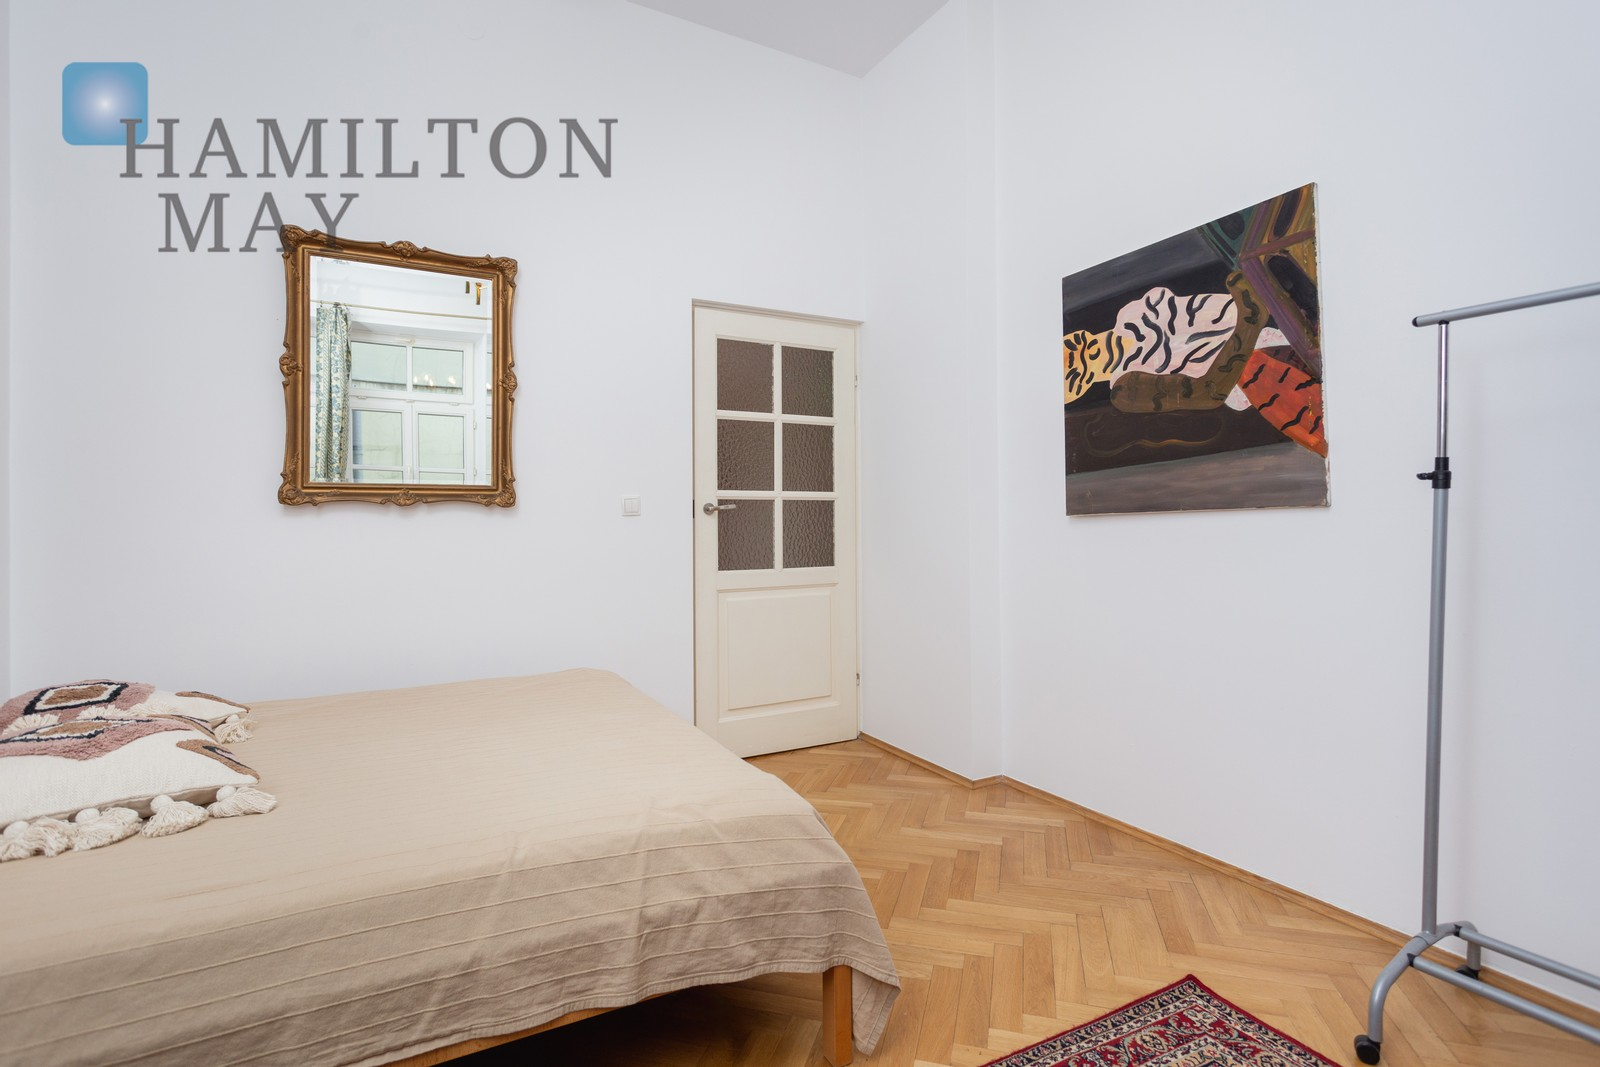 A quiet and spacious one bedroom apartment in the heart of Kazimierz Krakow for rent